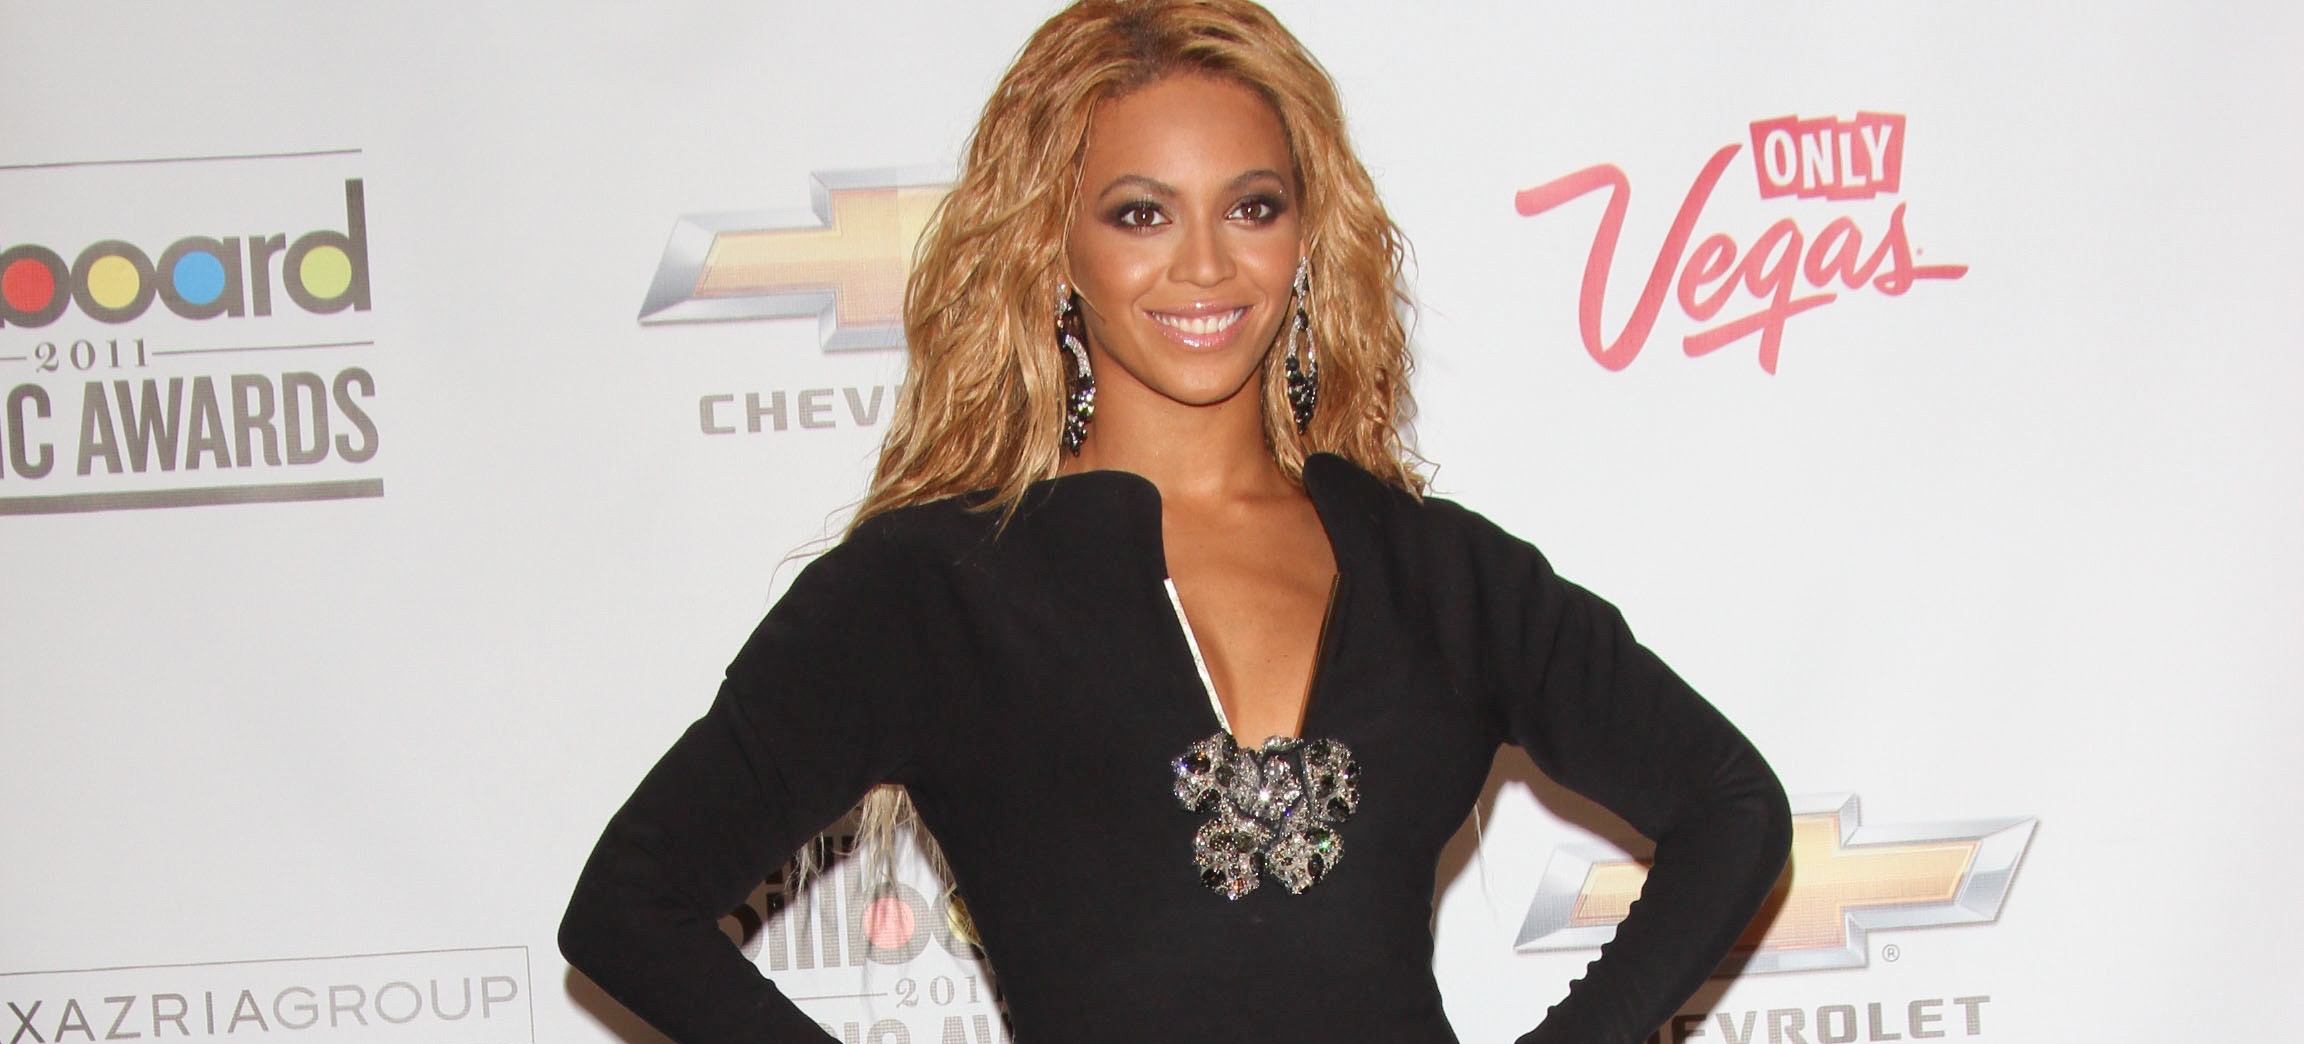 Beyoncé Shares How Veganism Helped Her Lose Weight